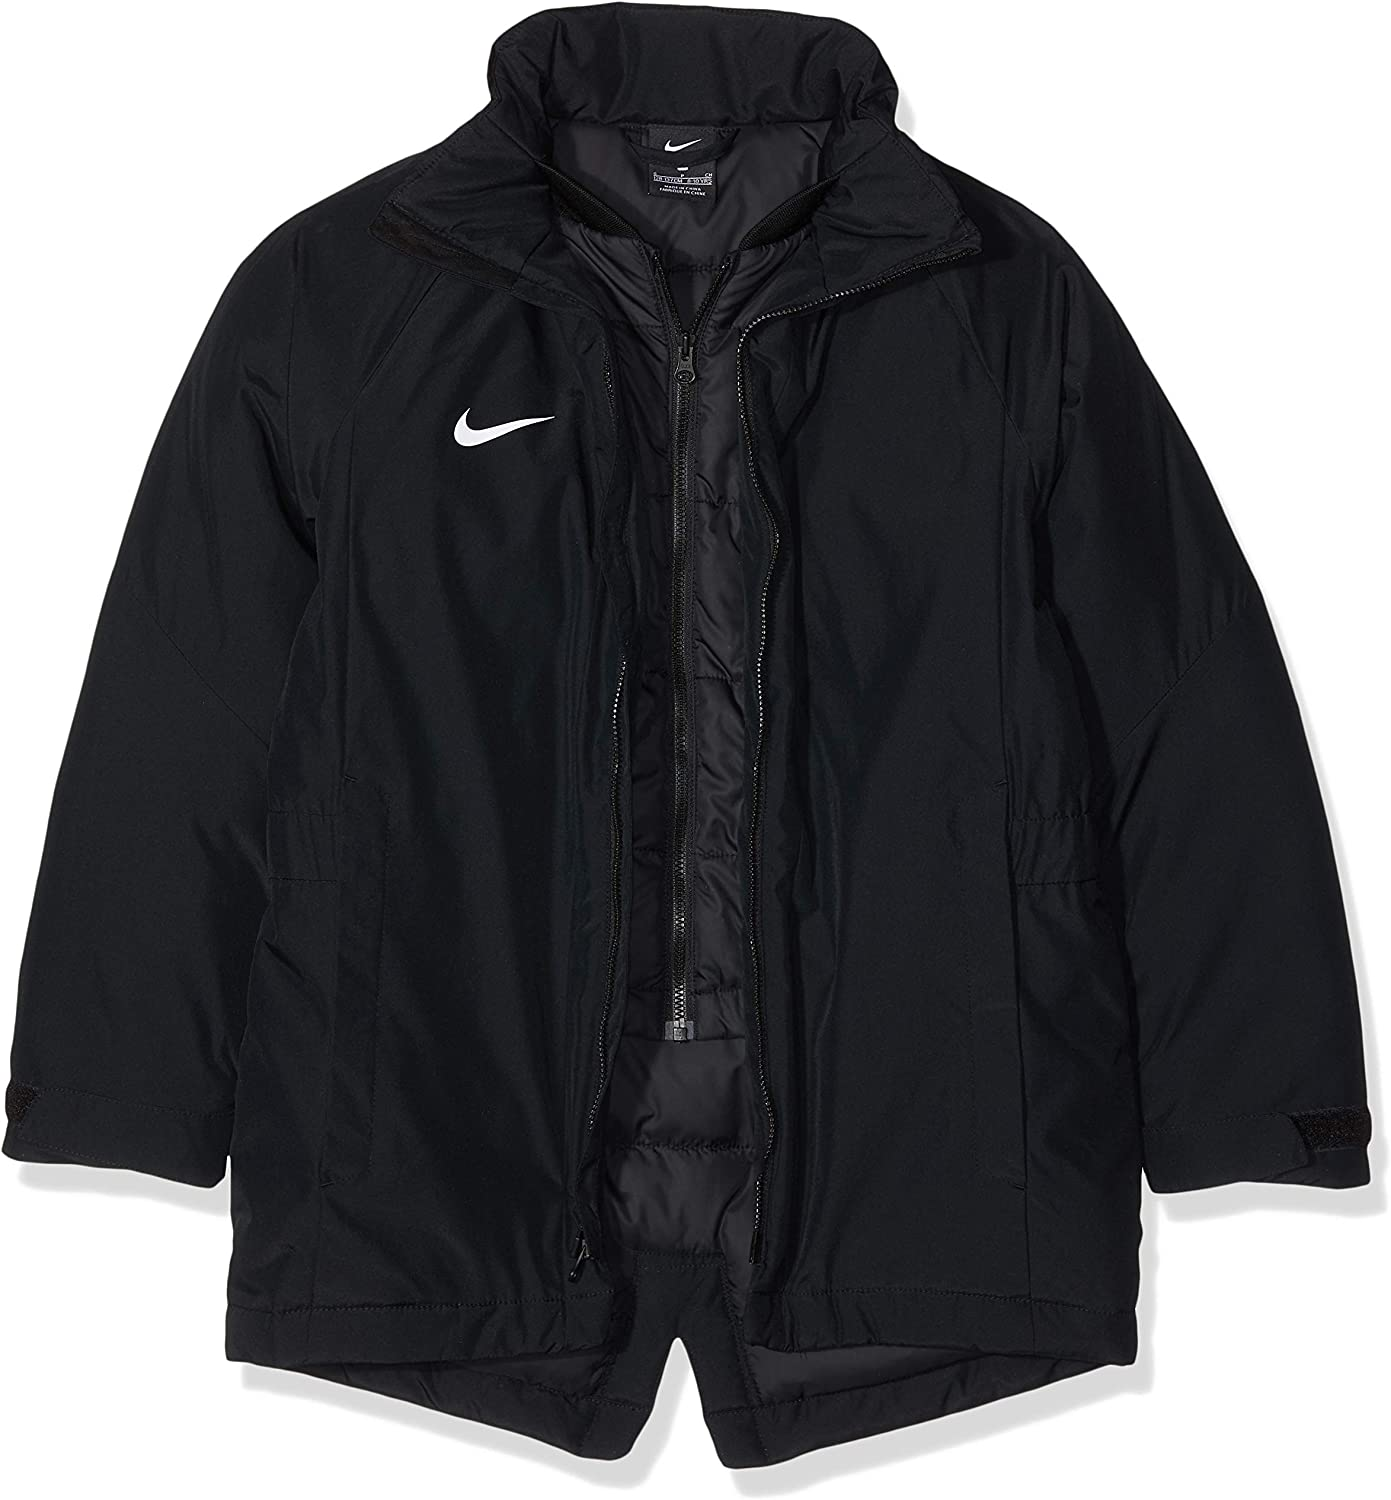 Youth Nike Youth Dry Academy18 Football Winter Jacket